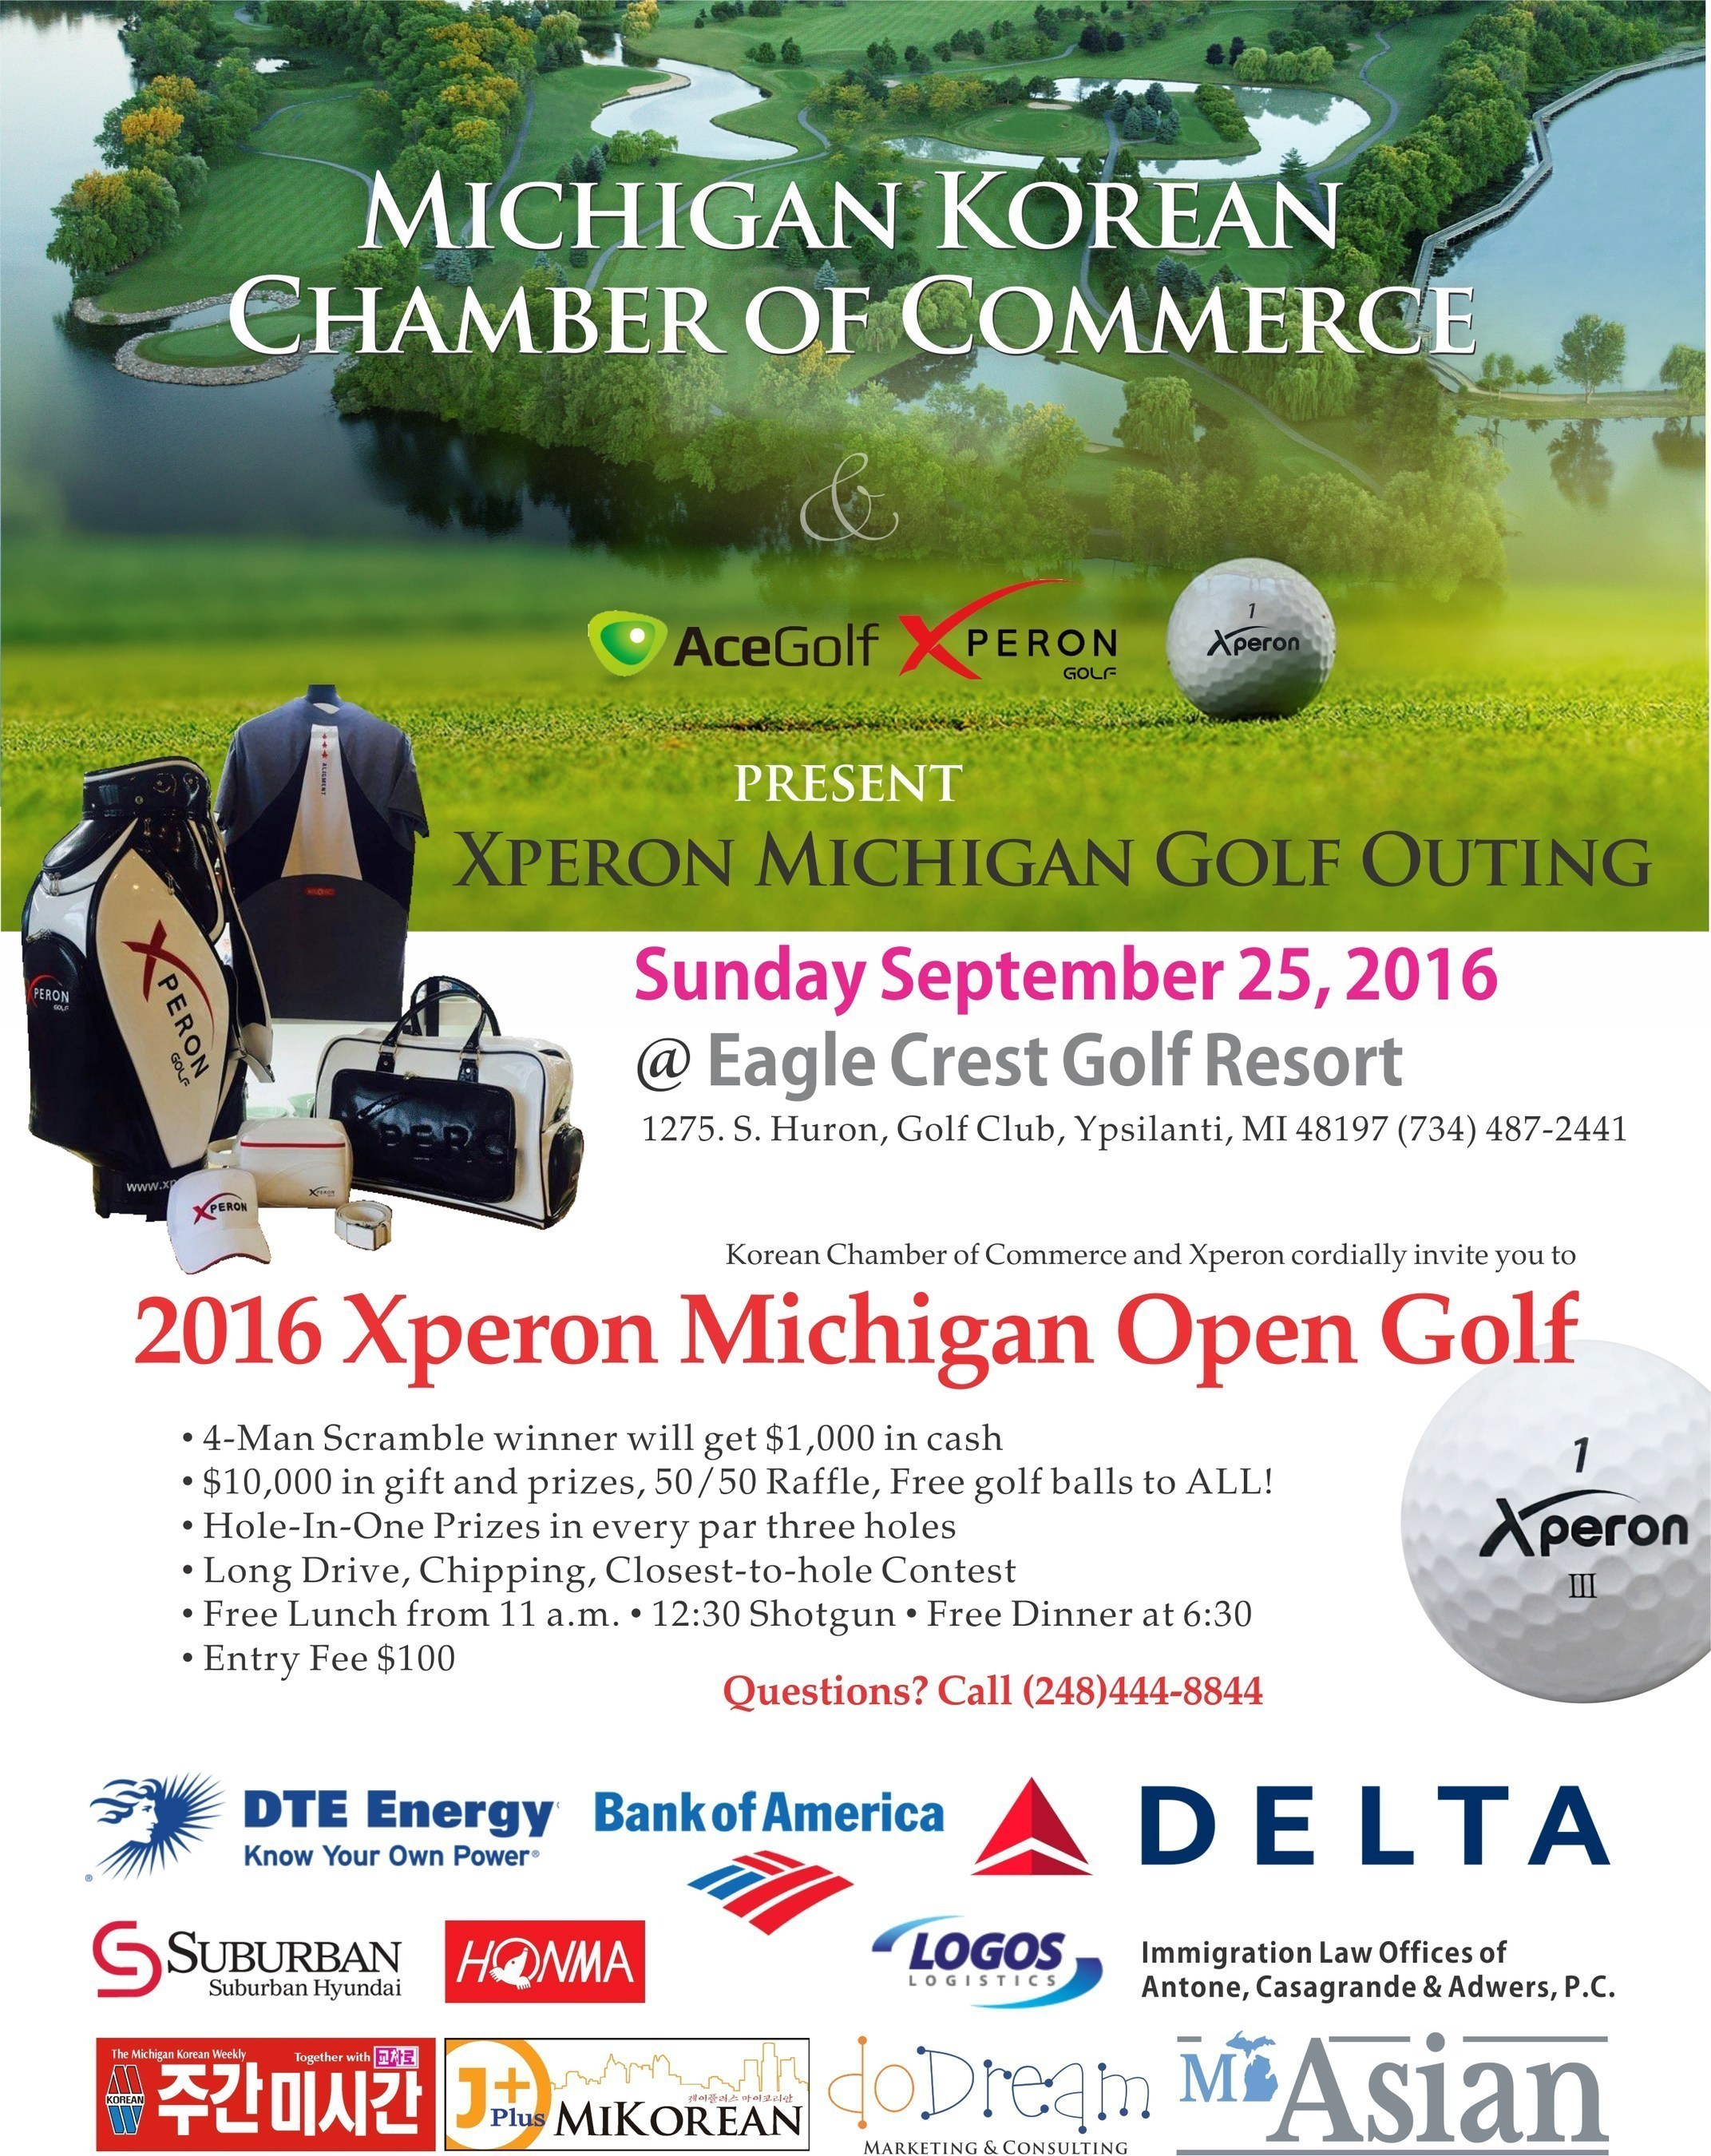 Get Ready for the 2016 Xperon Michigan Open Golf Event, Coming to Southeast Michigan This September